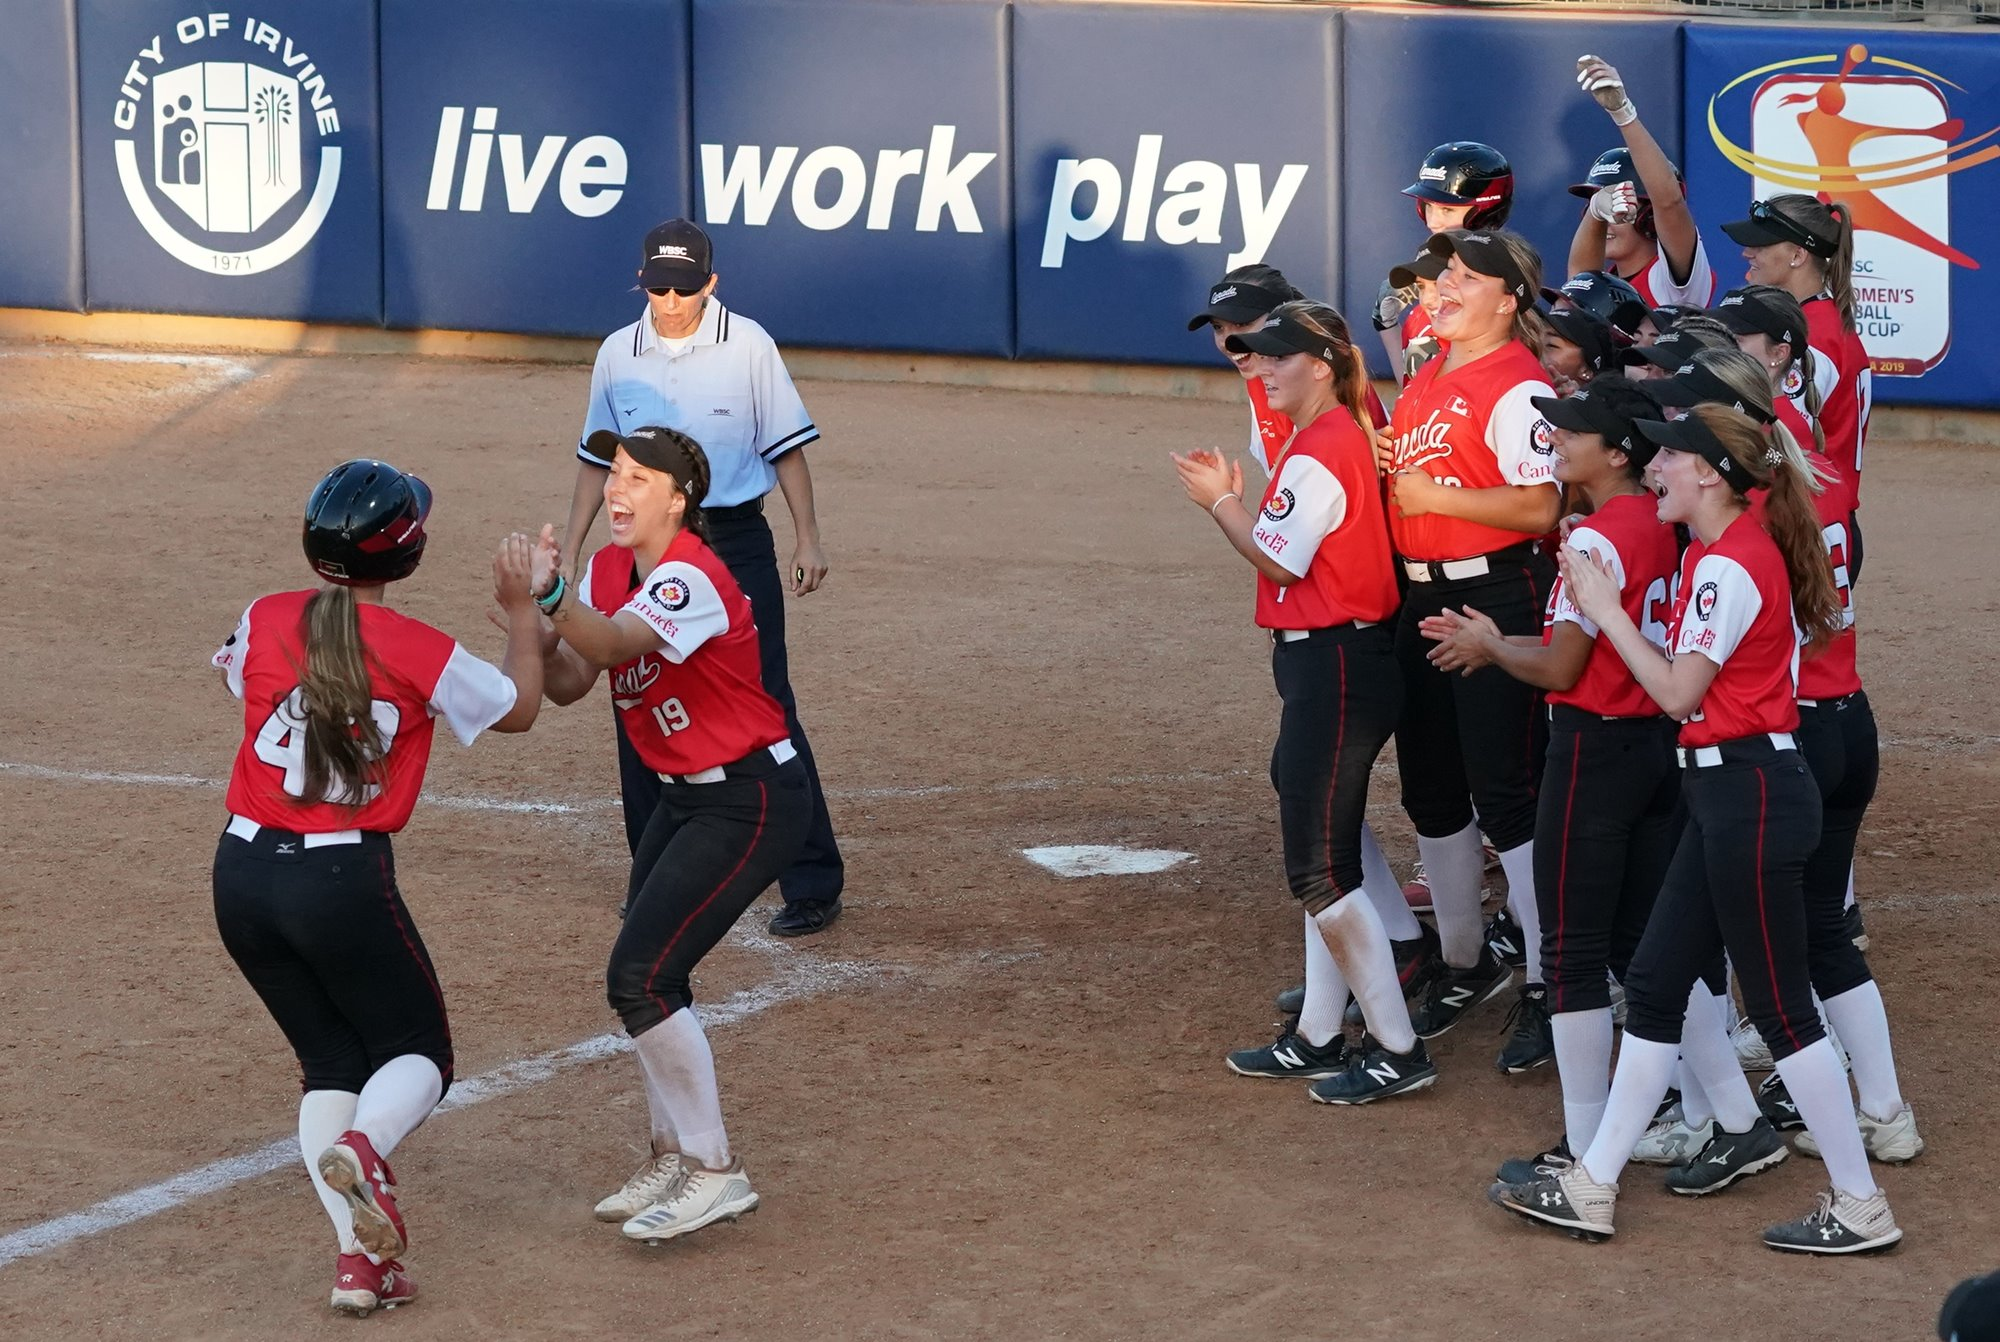 A base hit by Lauren Benson ended the game in the sixth